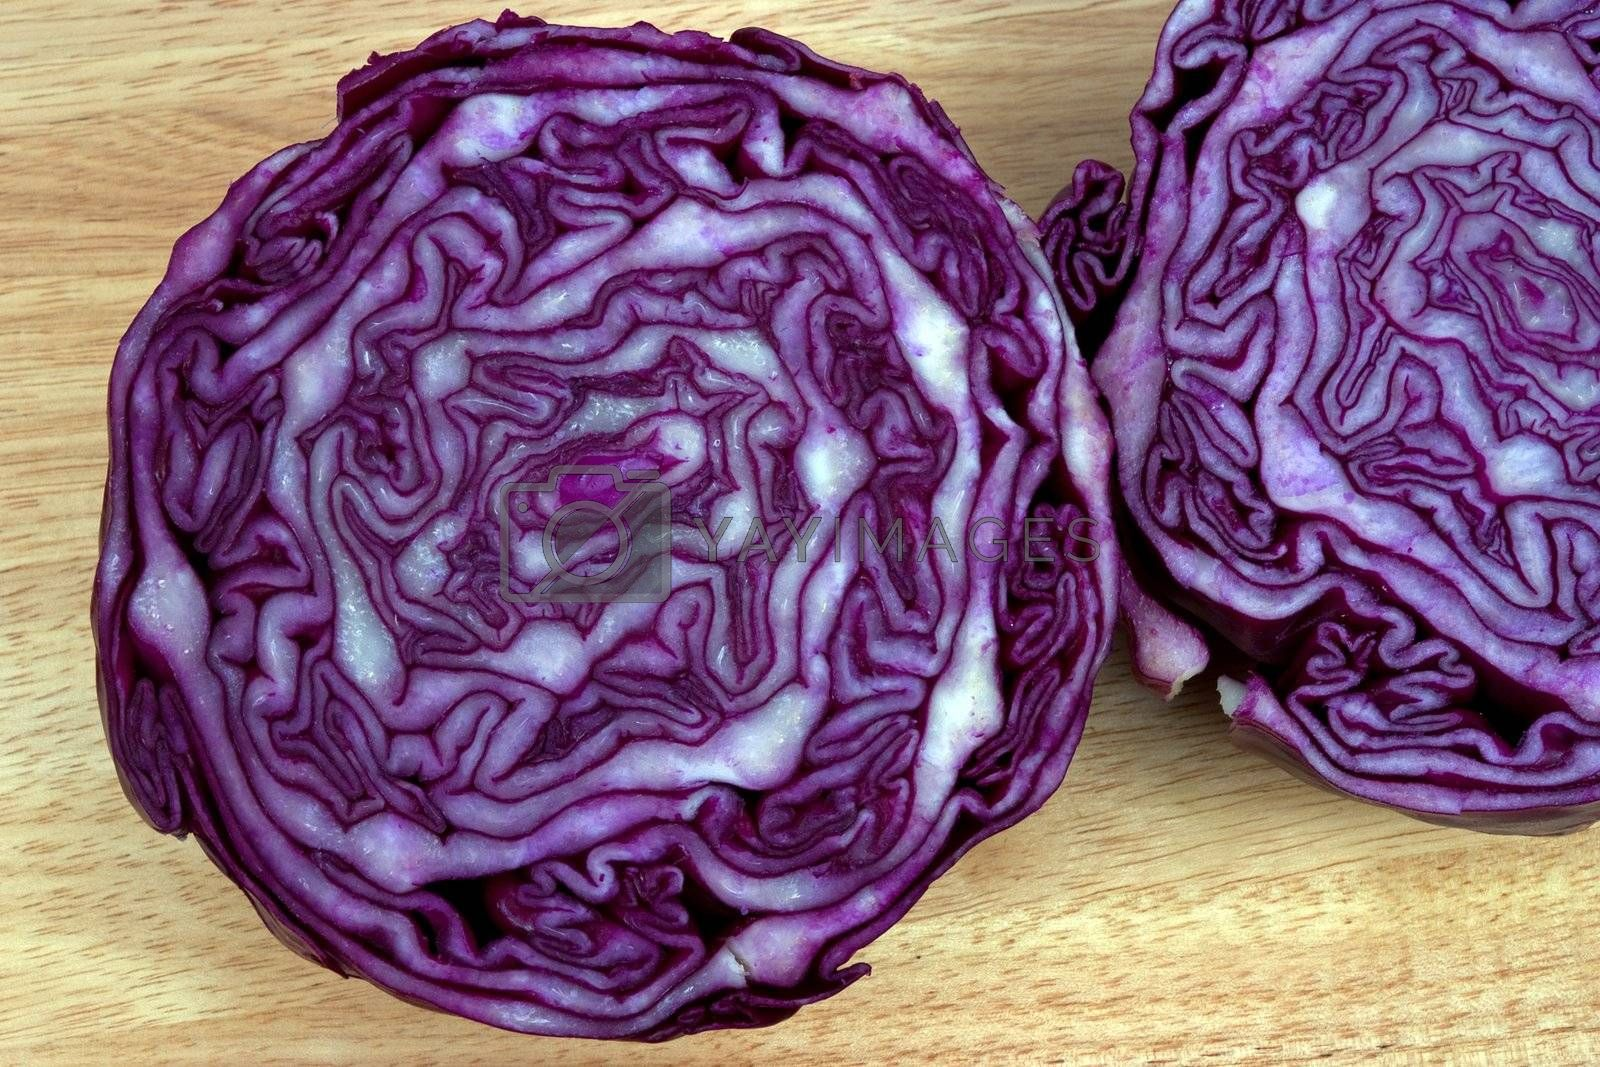 Red cabbage cut in half showing the growth pattern